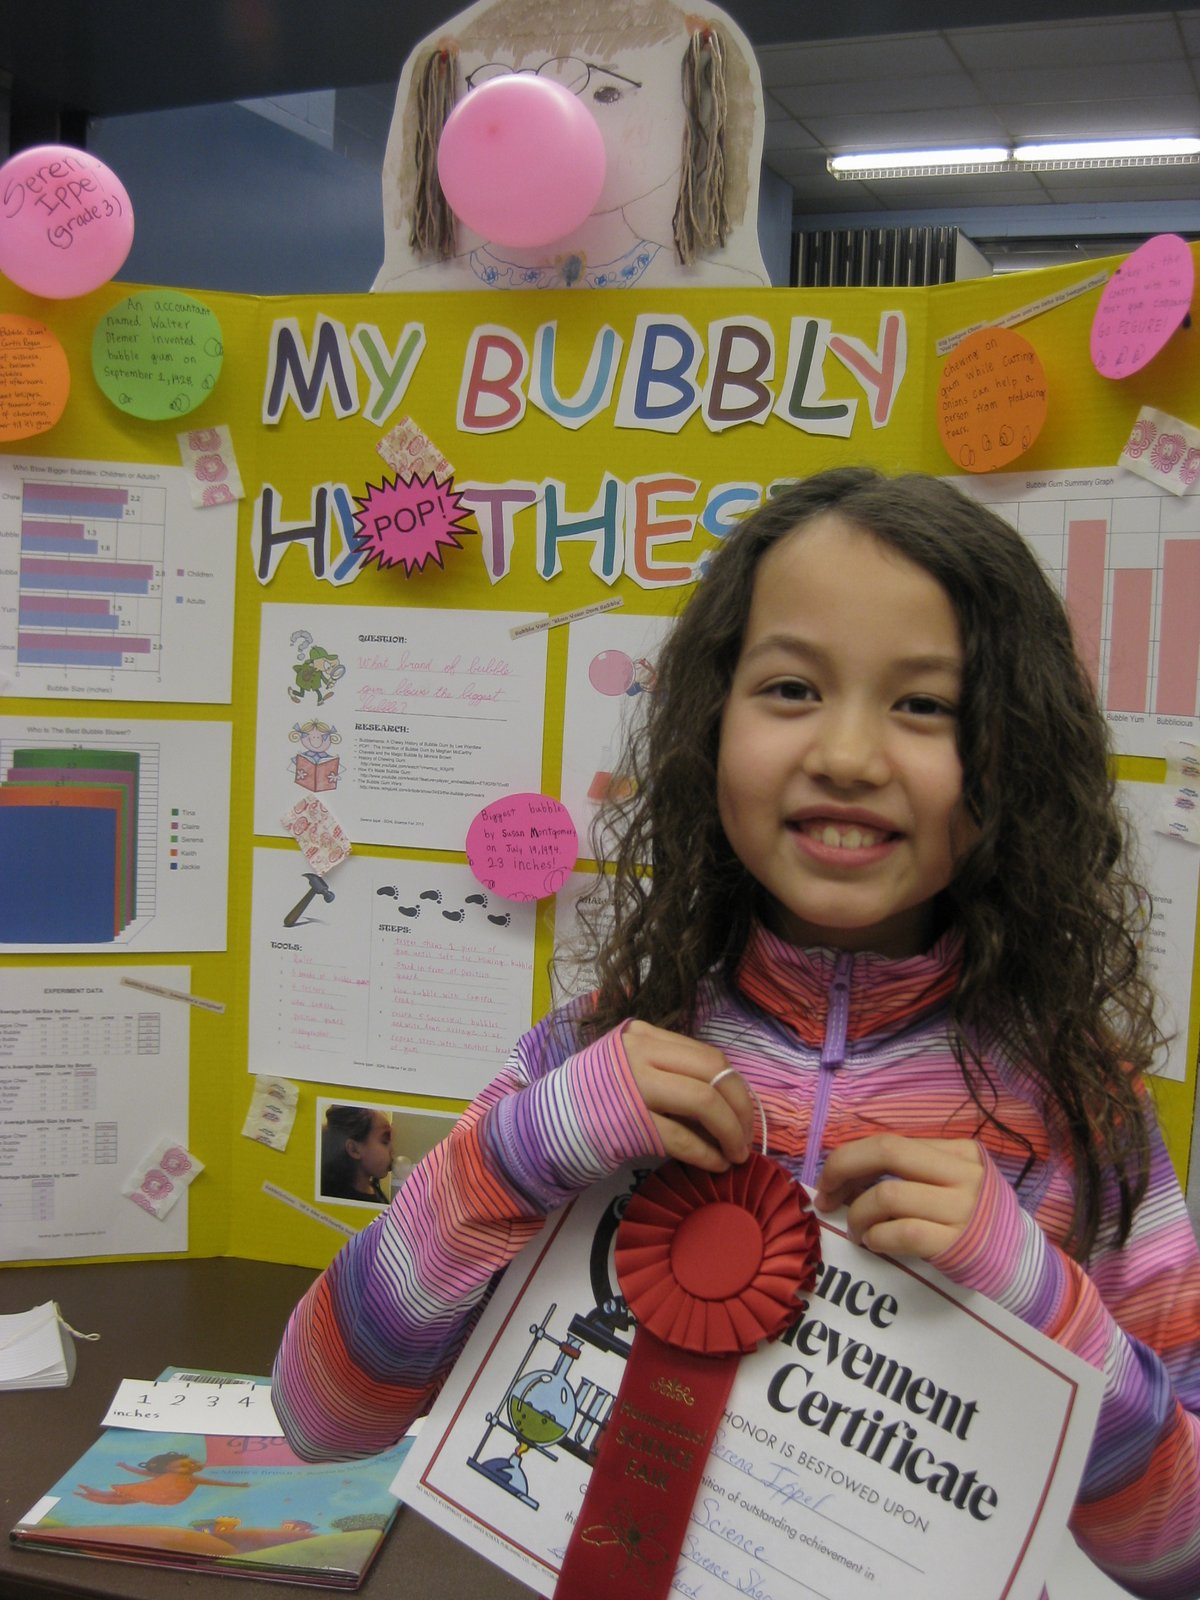 bubble gum science fair projects Use household ingredients to make a bubble blowing solution bubble-ology science //wwwsciencebuddiesorg/science-fair-projects/project-ideas/chem_p025.